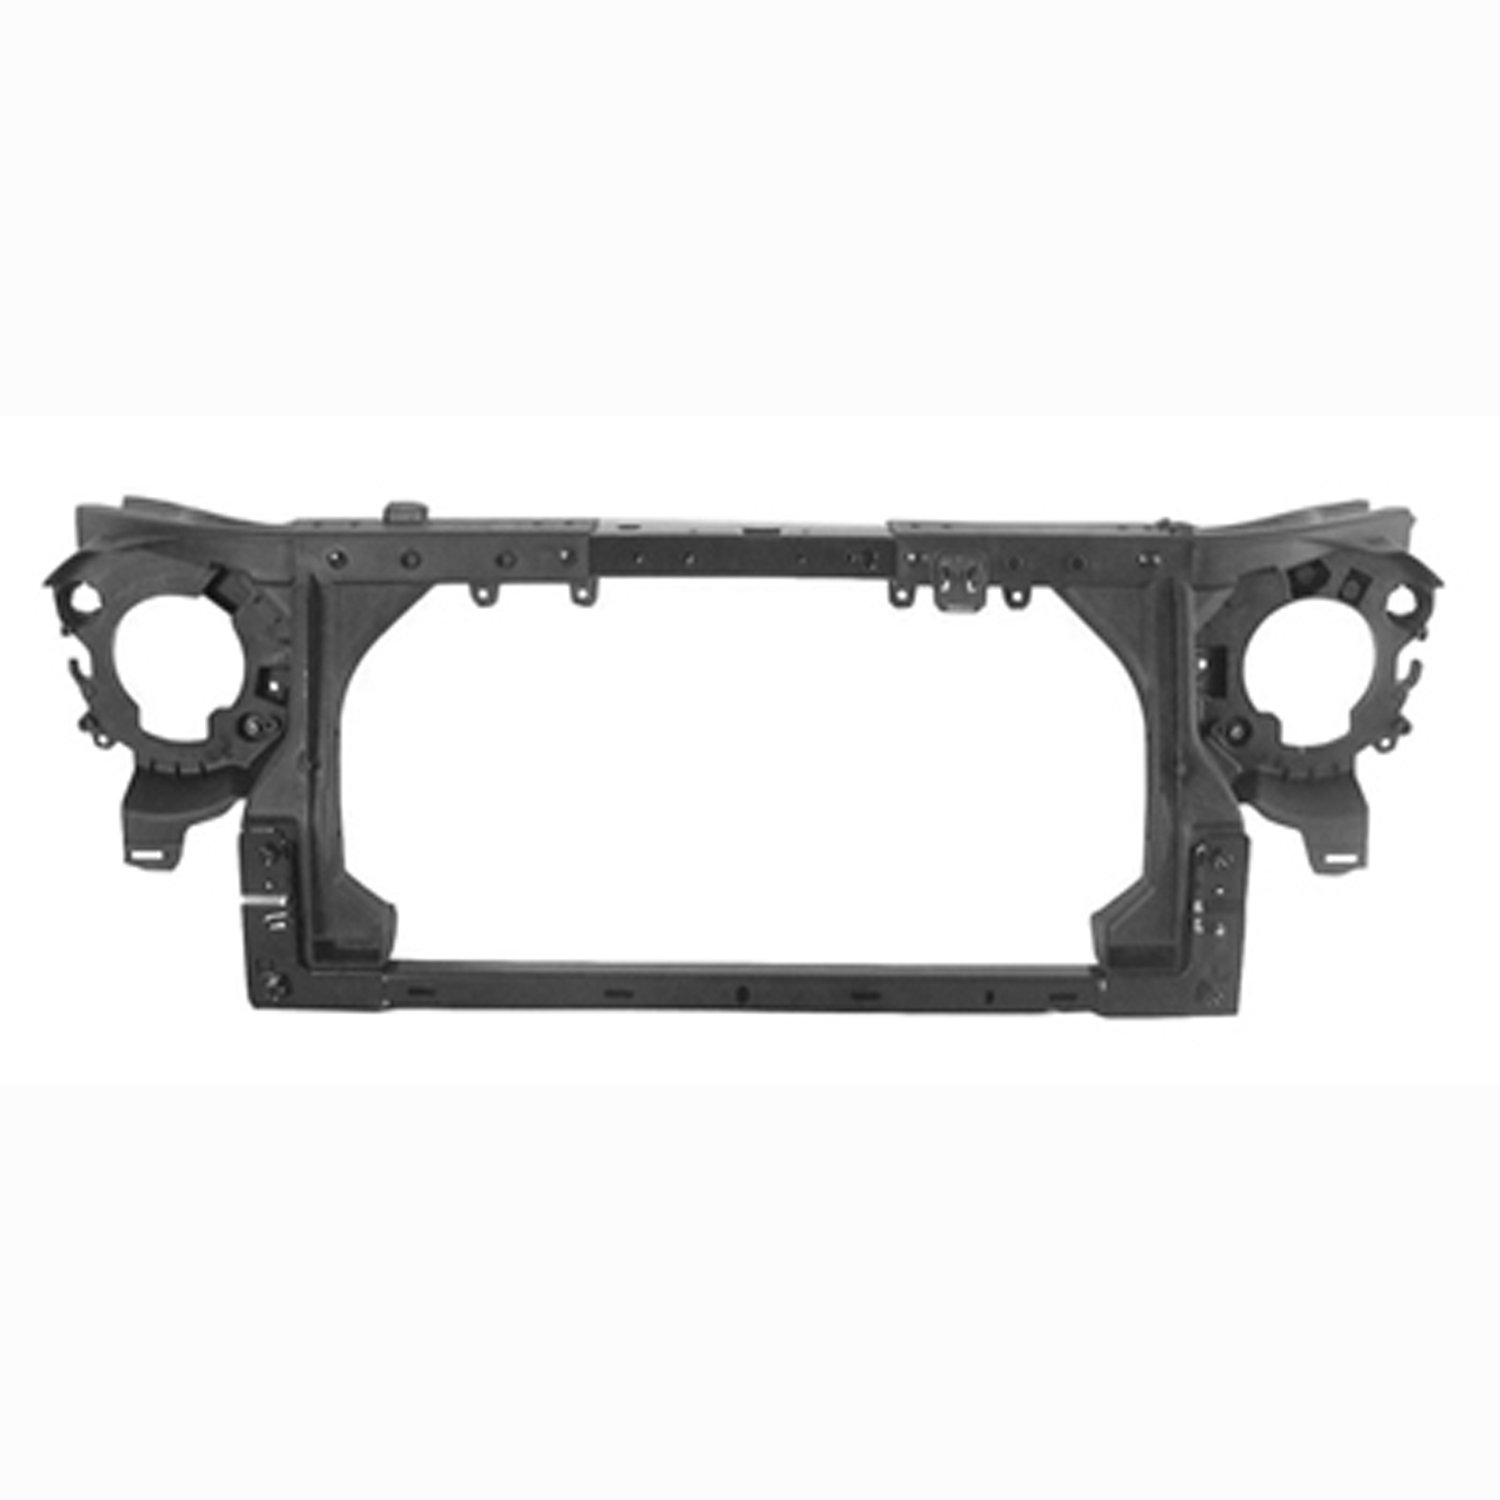 OE Replacement Radiator Support JEEP WRANGLER 2007-2016 (Partslink CH1225213) Multiple Manufacturers CH1225213PP